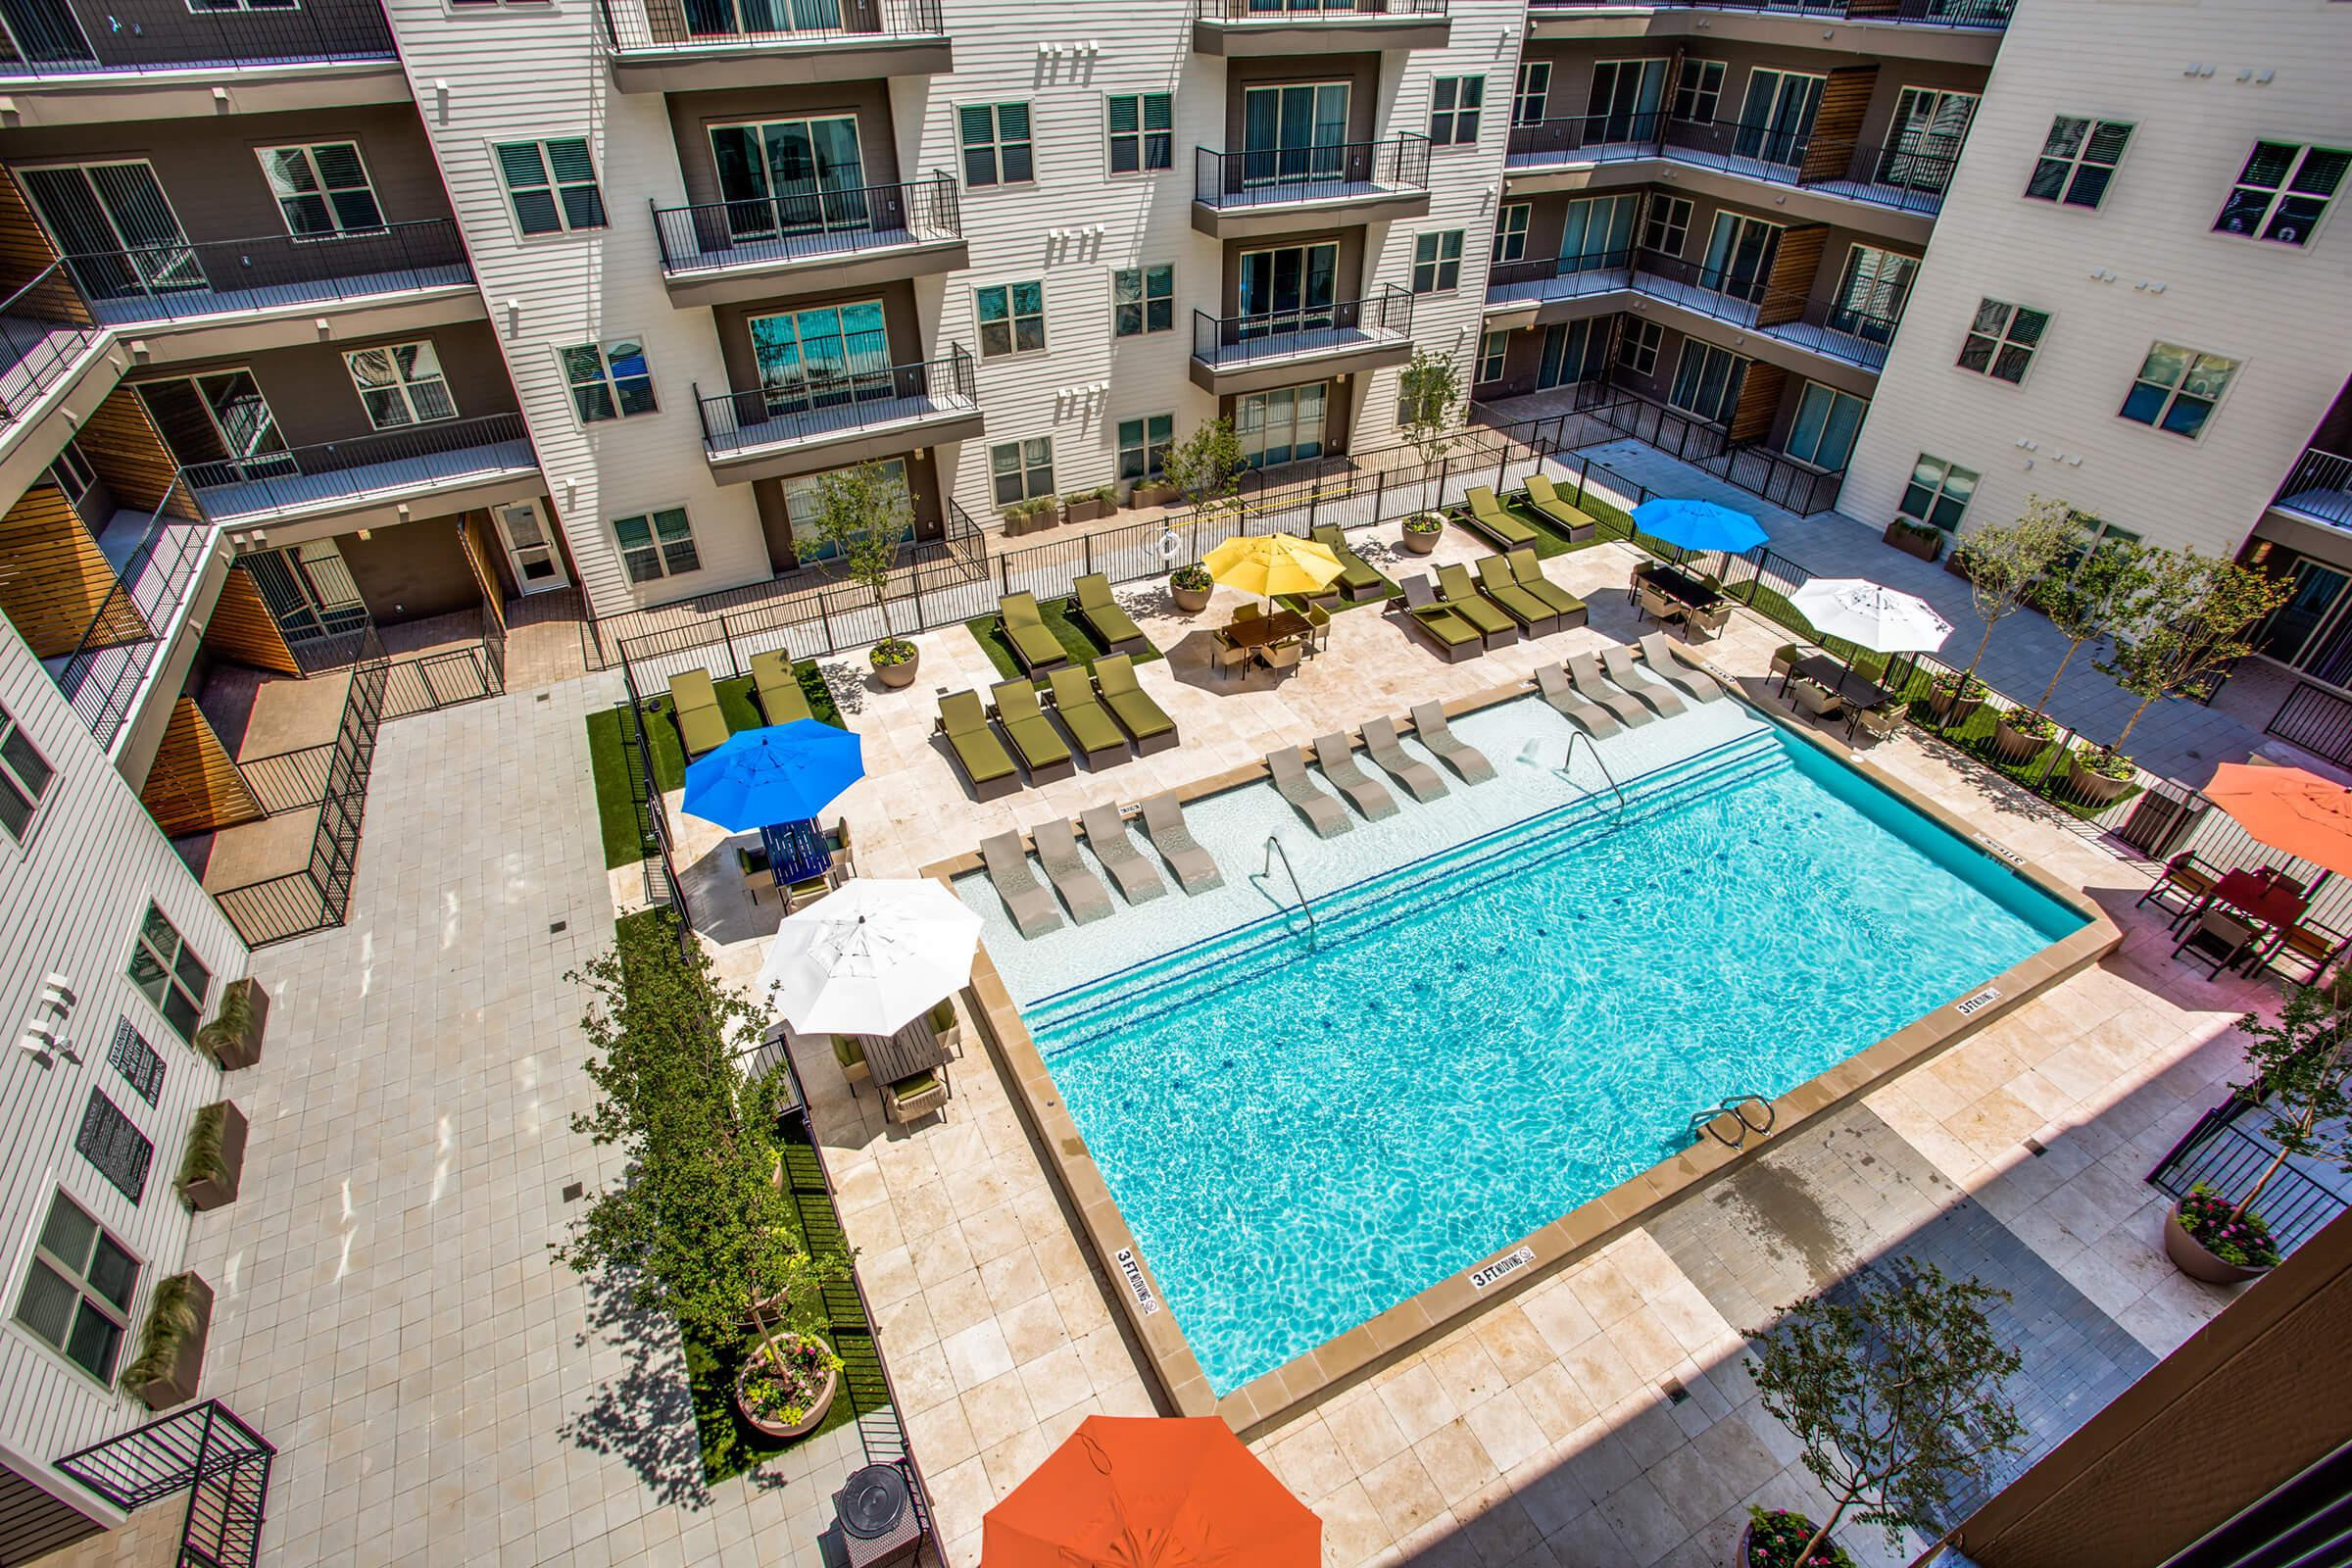 Apartments Near Amberton Modena for Amberton University Students in Garland, TX